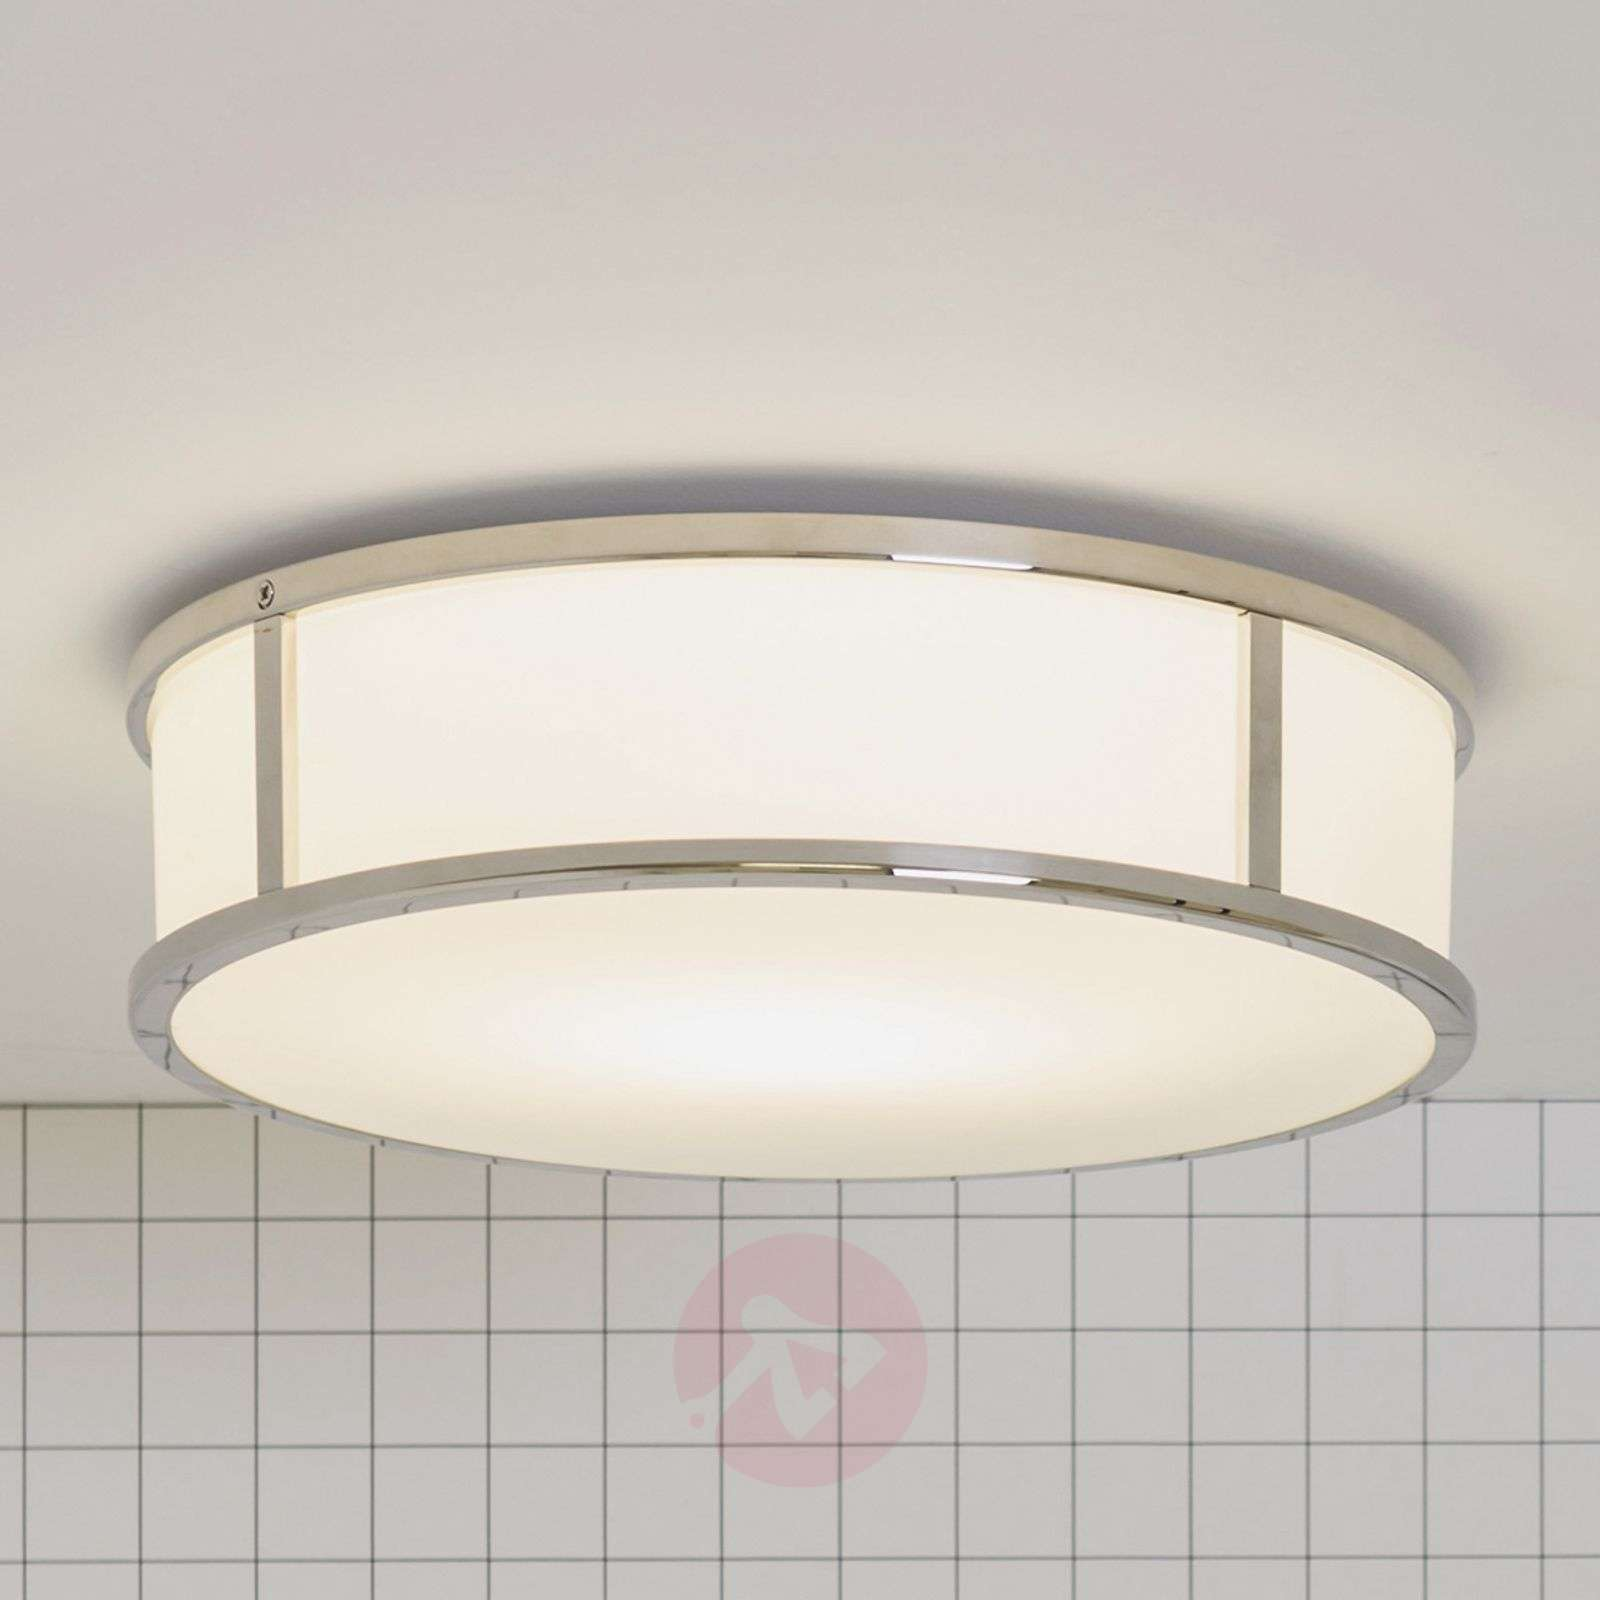 Astro Mashiko Round ceiling light Ø 30 cm chrome-1020466-05